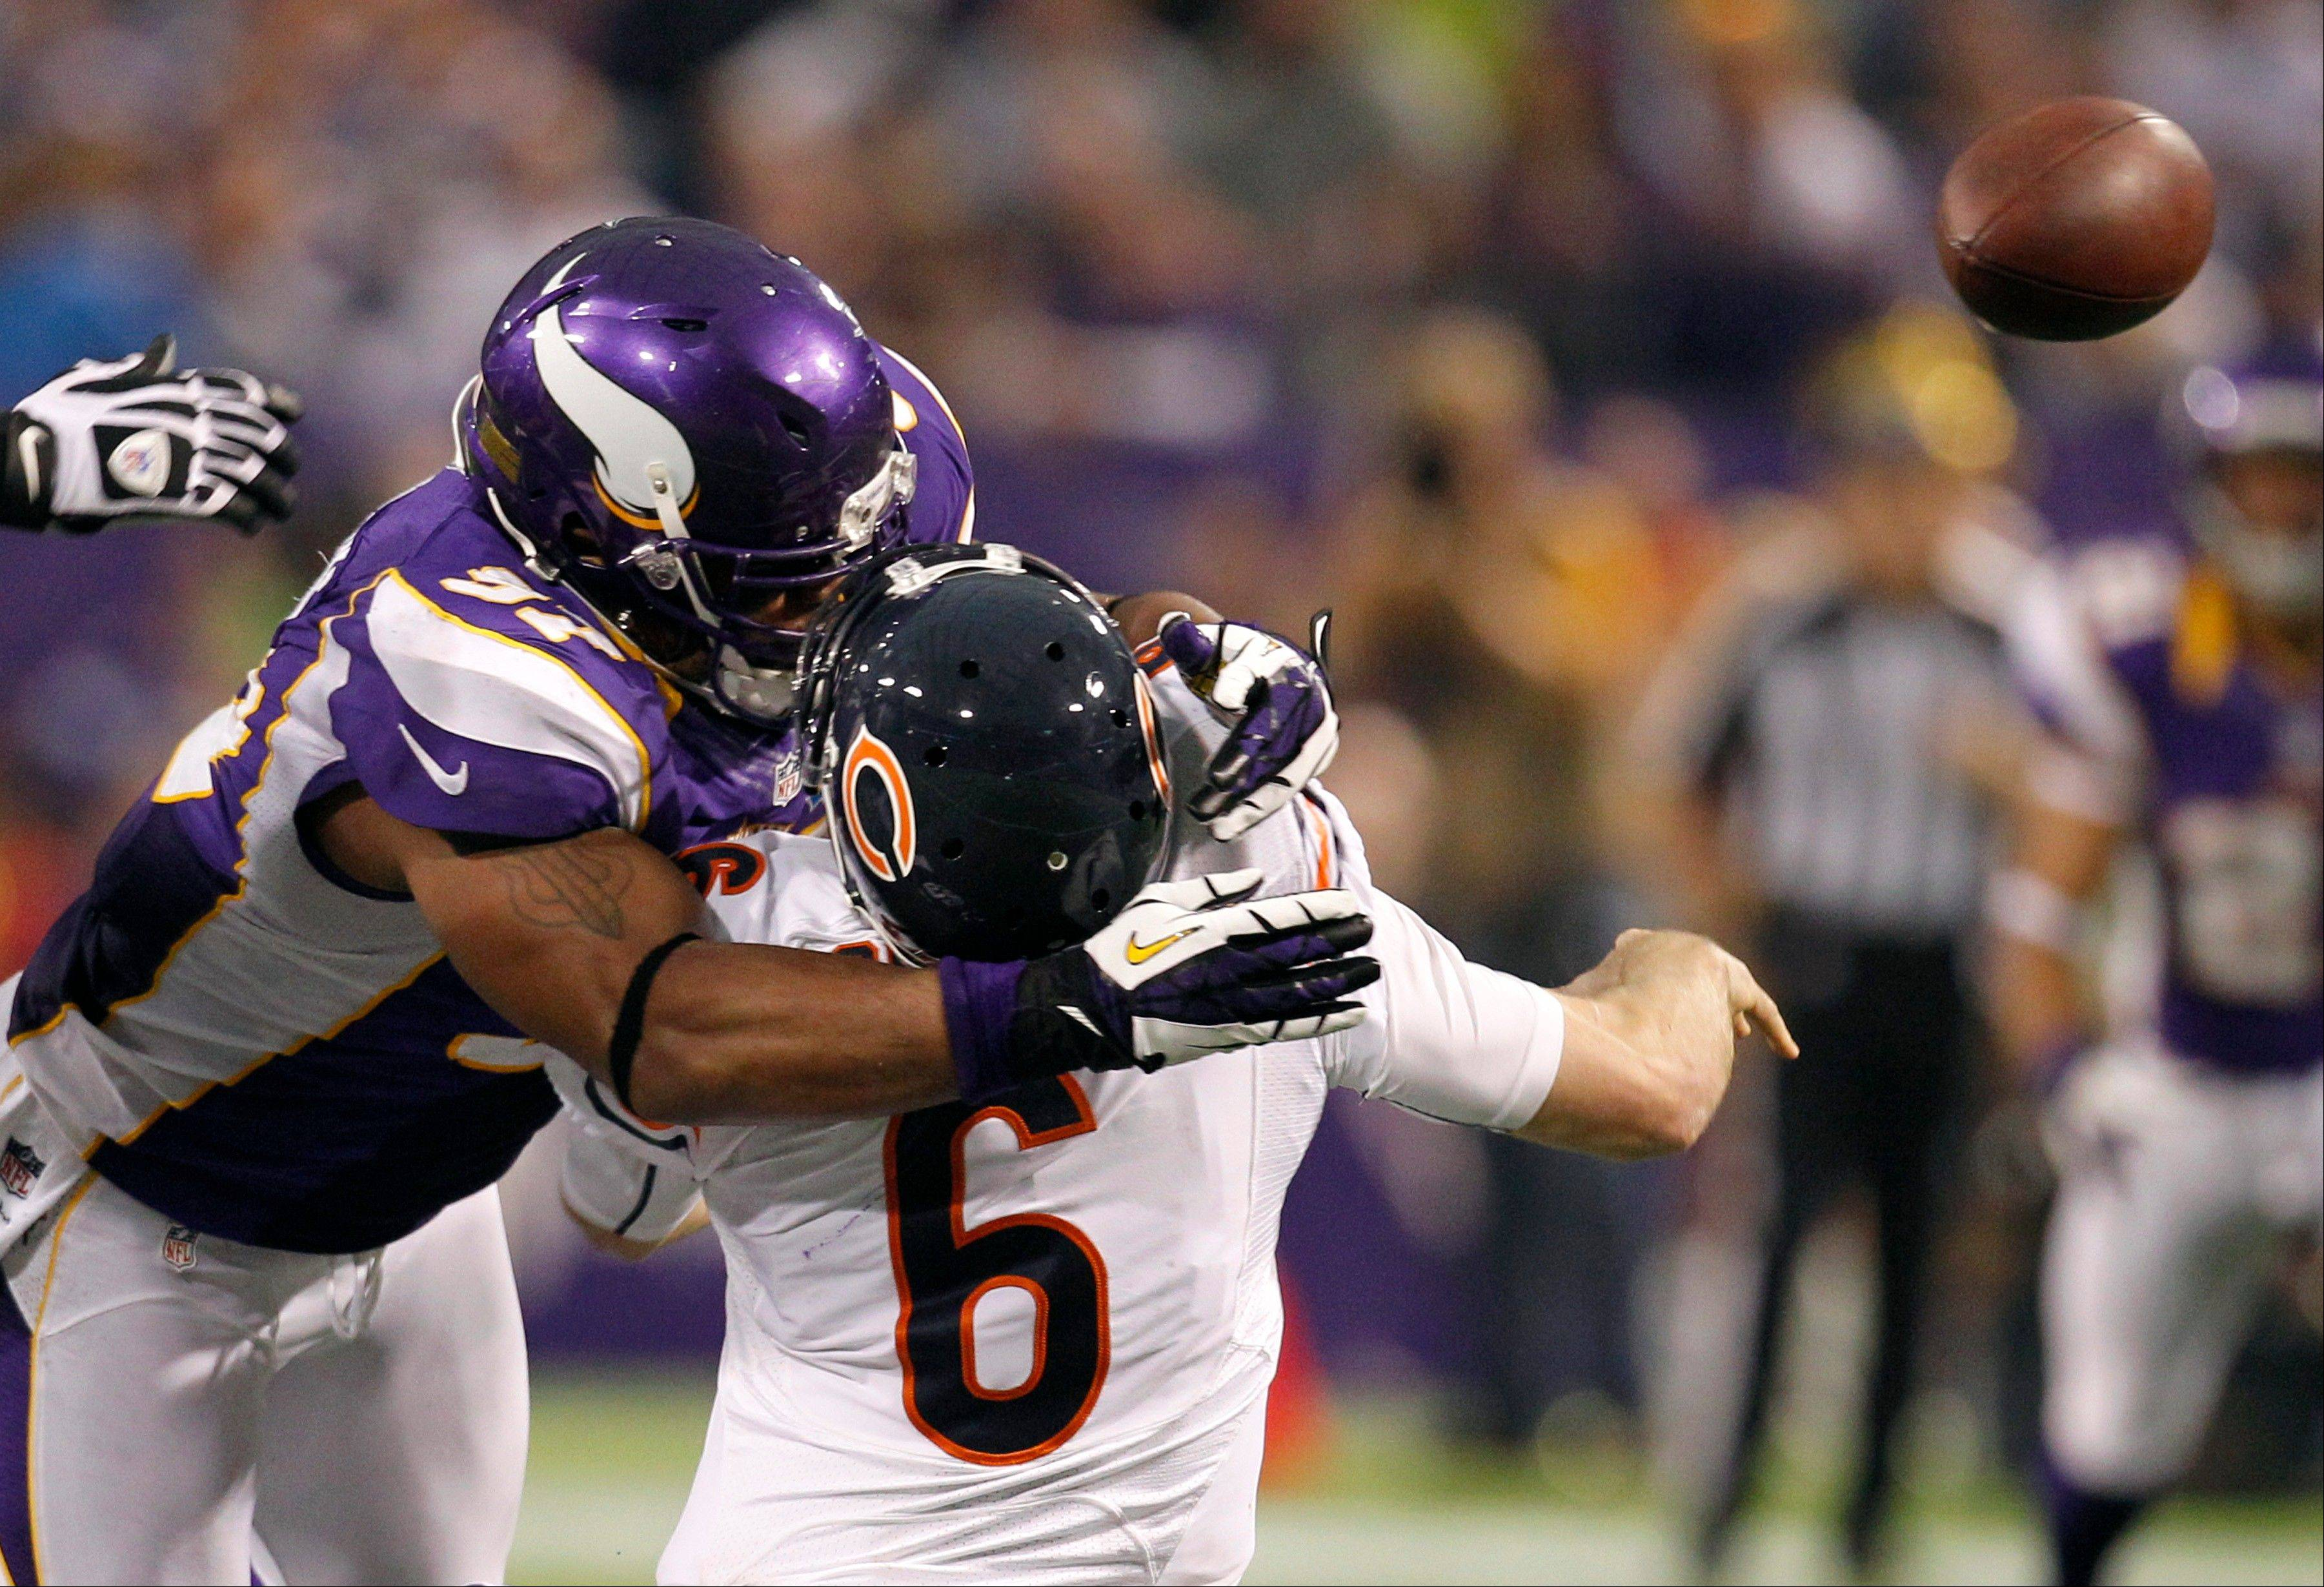 Chicago Bears quarterback Jay Cutler gets hit by Minnesota Vikings defensive end Everson Griffen, left, after passing the ball during the second half. Griffen was called for a personal foul on the play.